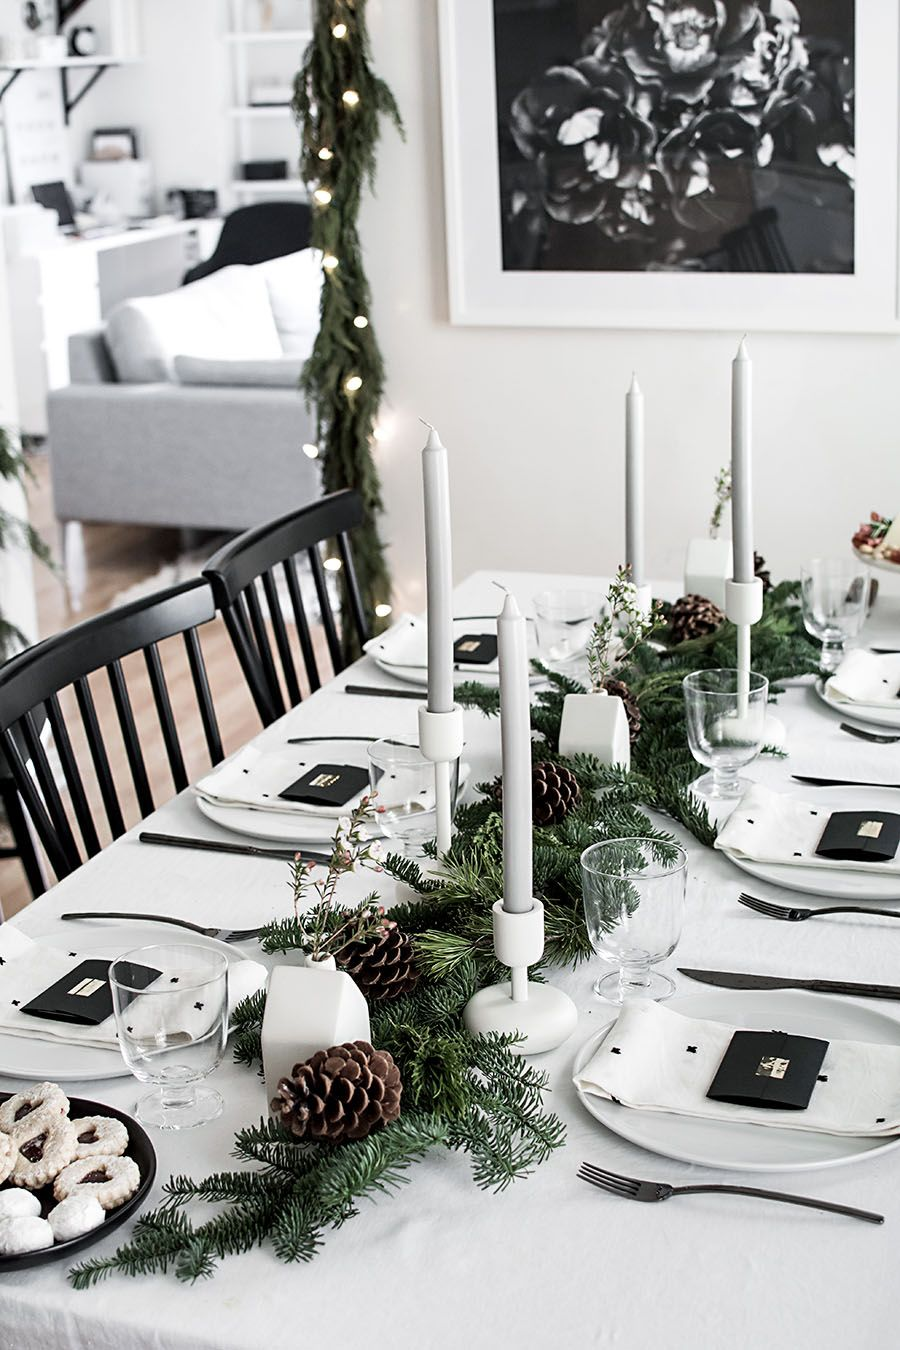 Easy Ways to Set a Festive Holiday Table #whitecandleswedding